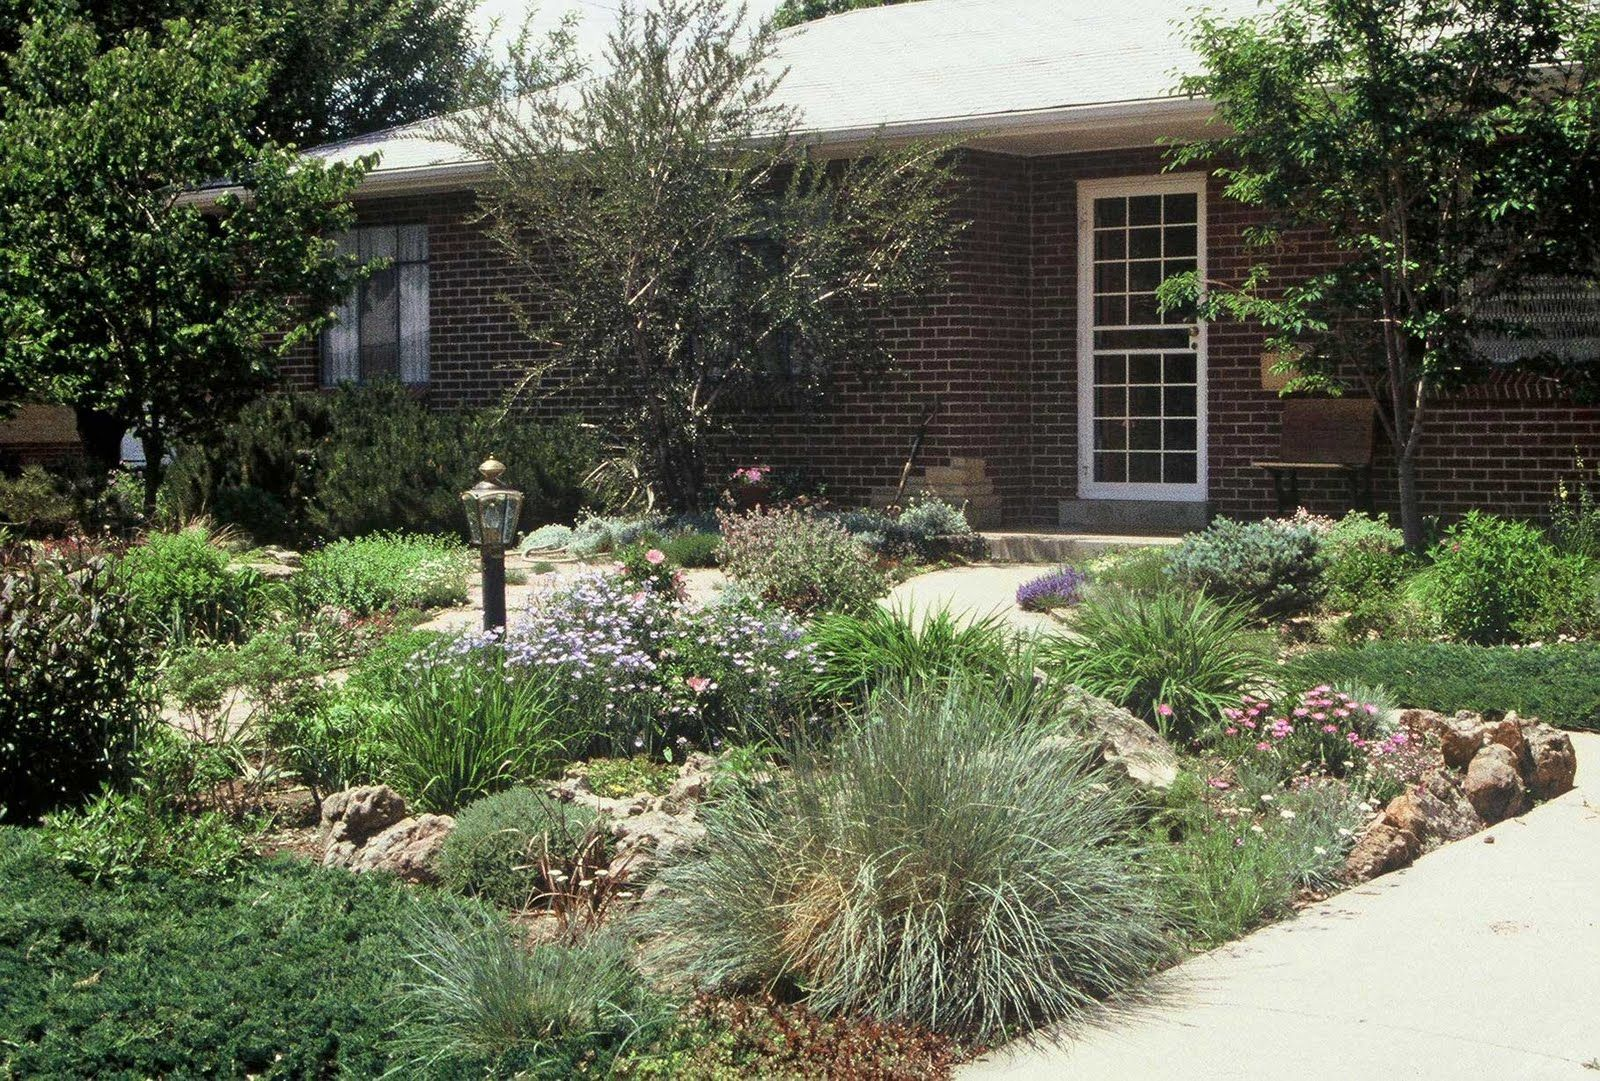 Simple landscaping ideas for front yards backyard ideas for Landscaping options